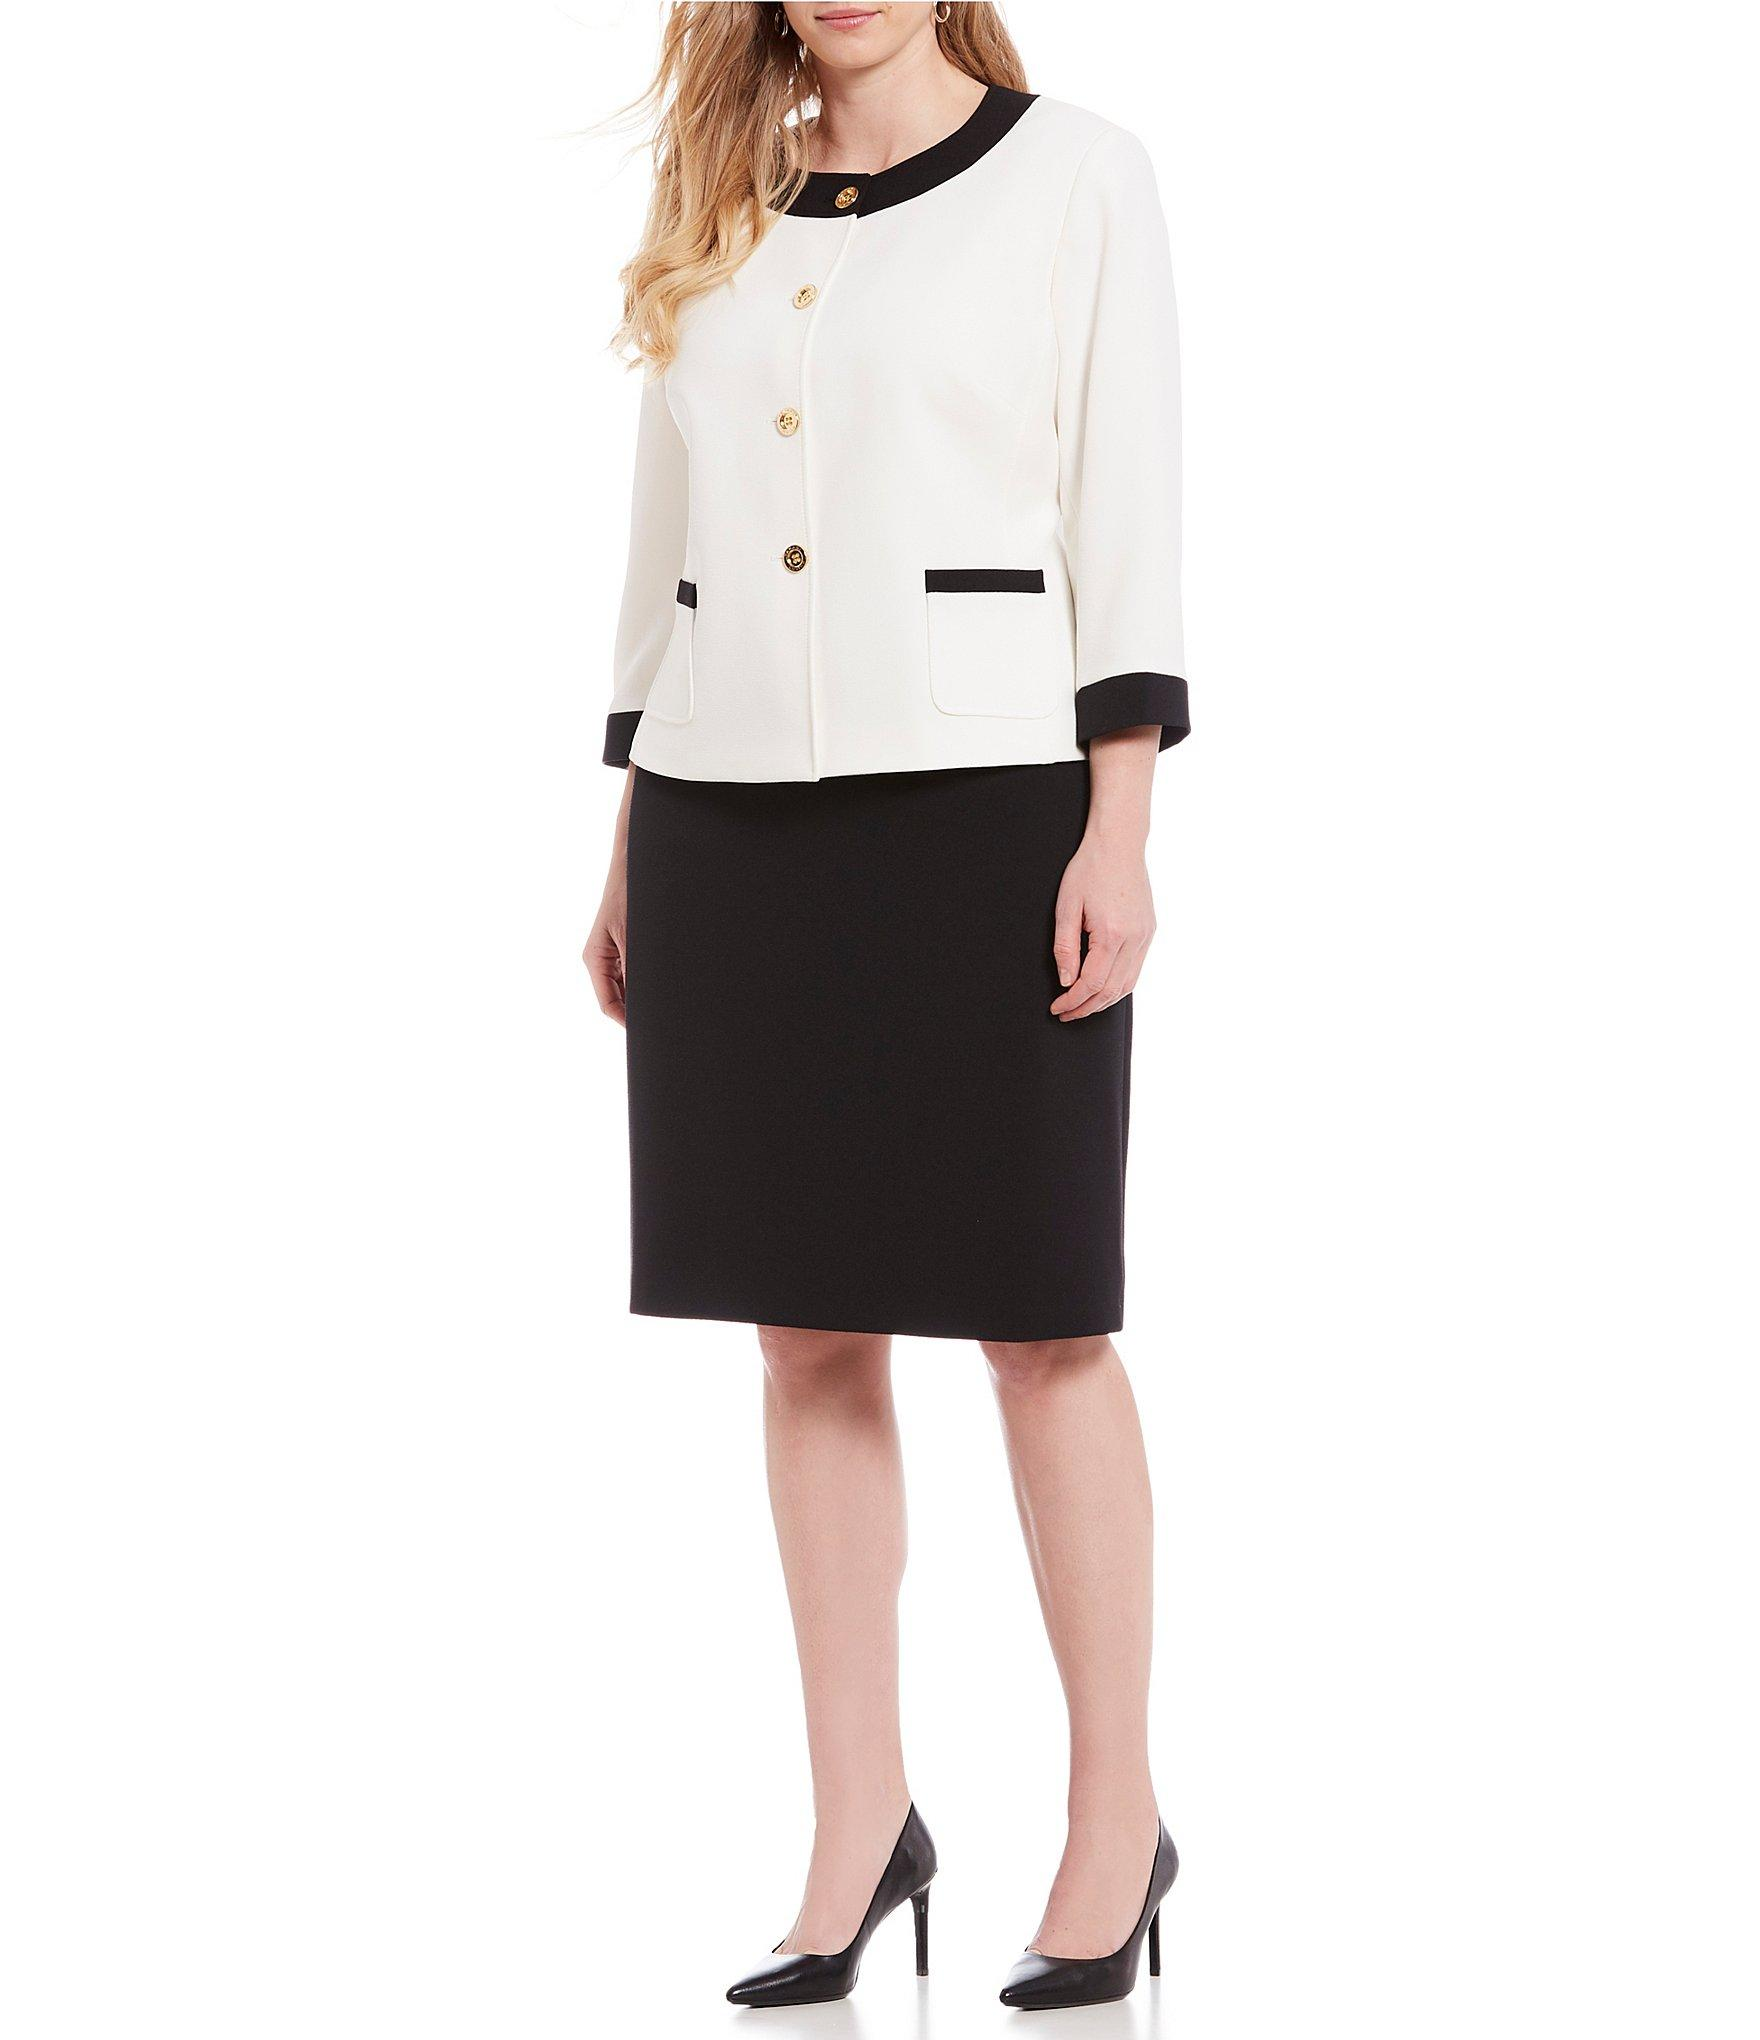 7a64ba0f683 Lyst - Tahari Plus Size Crepe Contrast Framed Jacket Suit in White